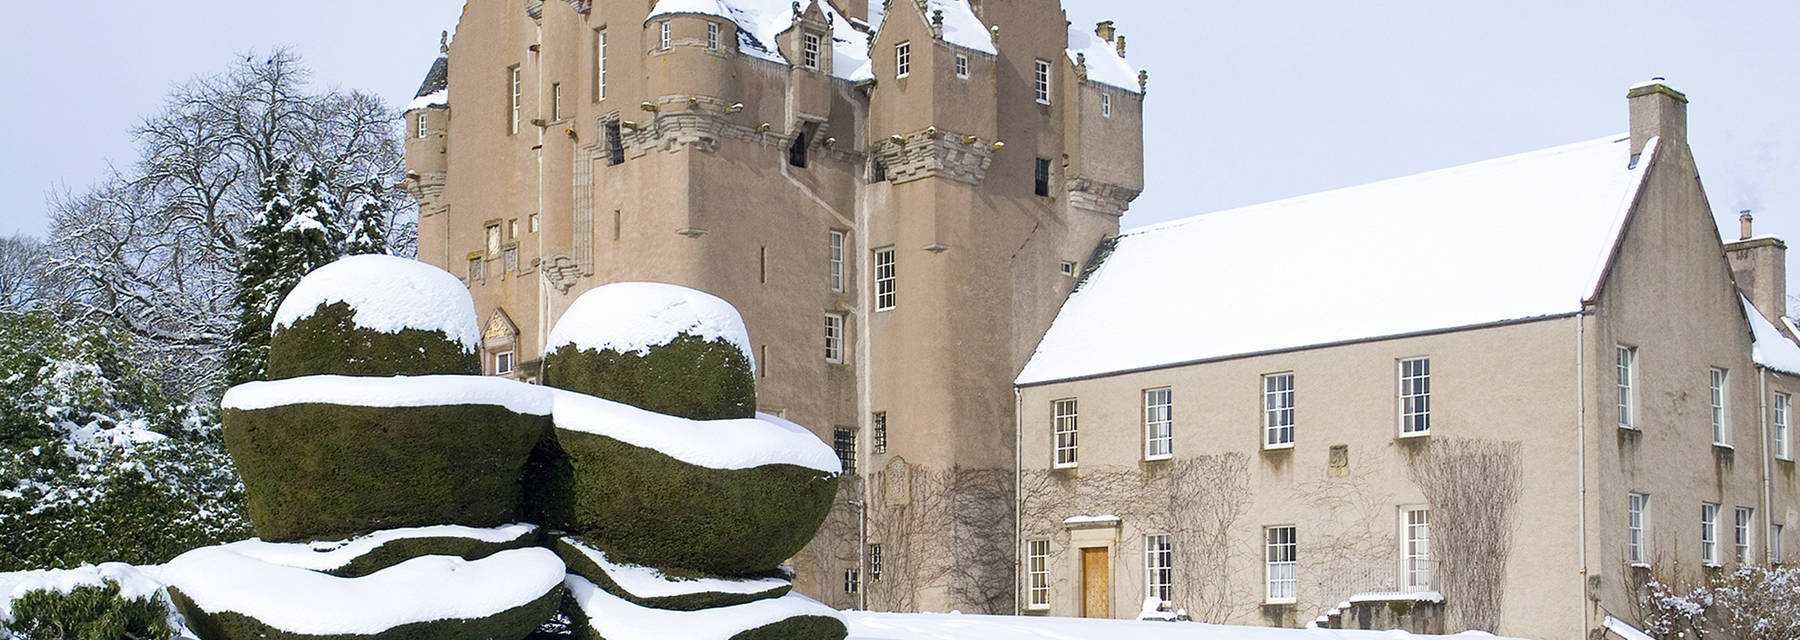 Crathes Castle in the snow